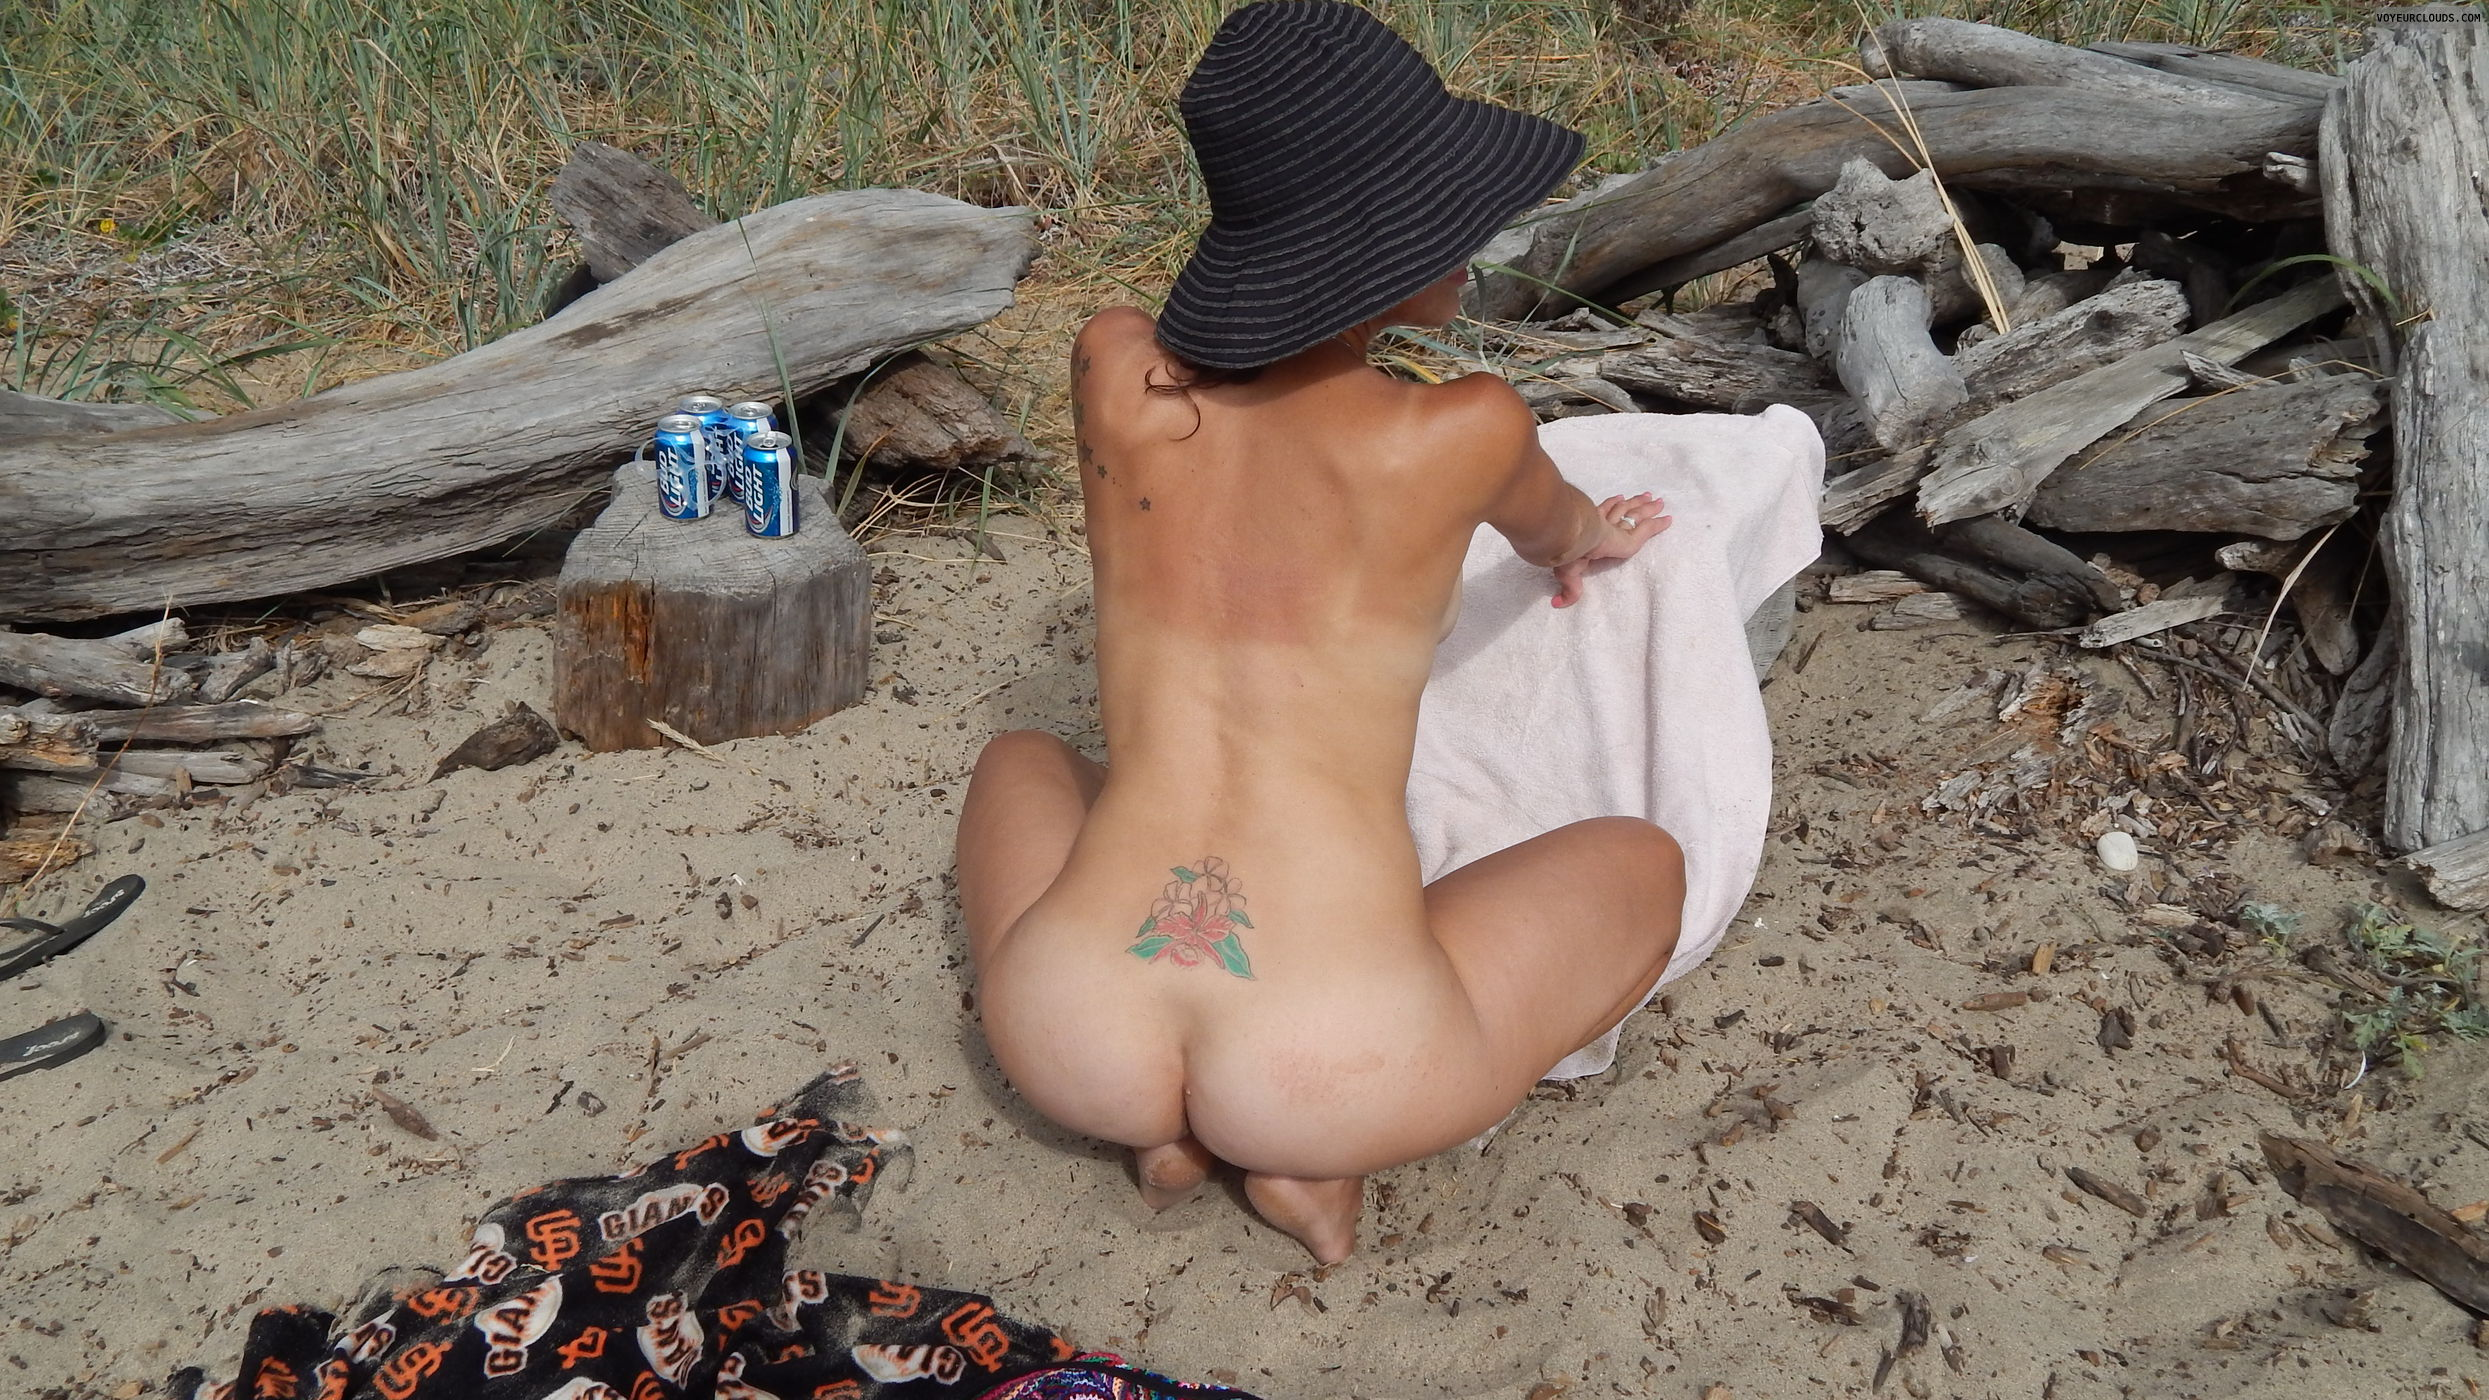 Beach jerk off